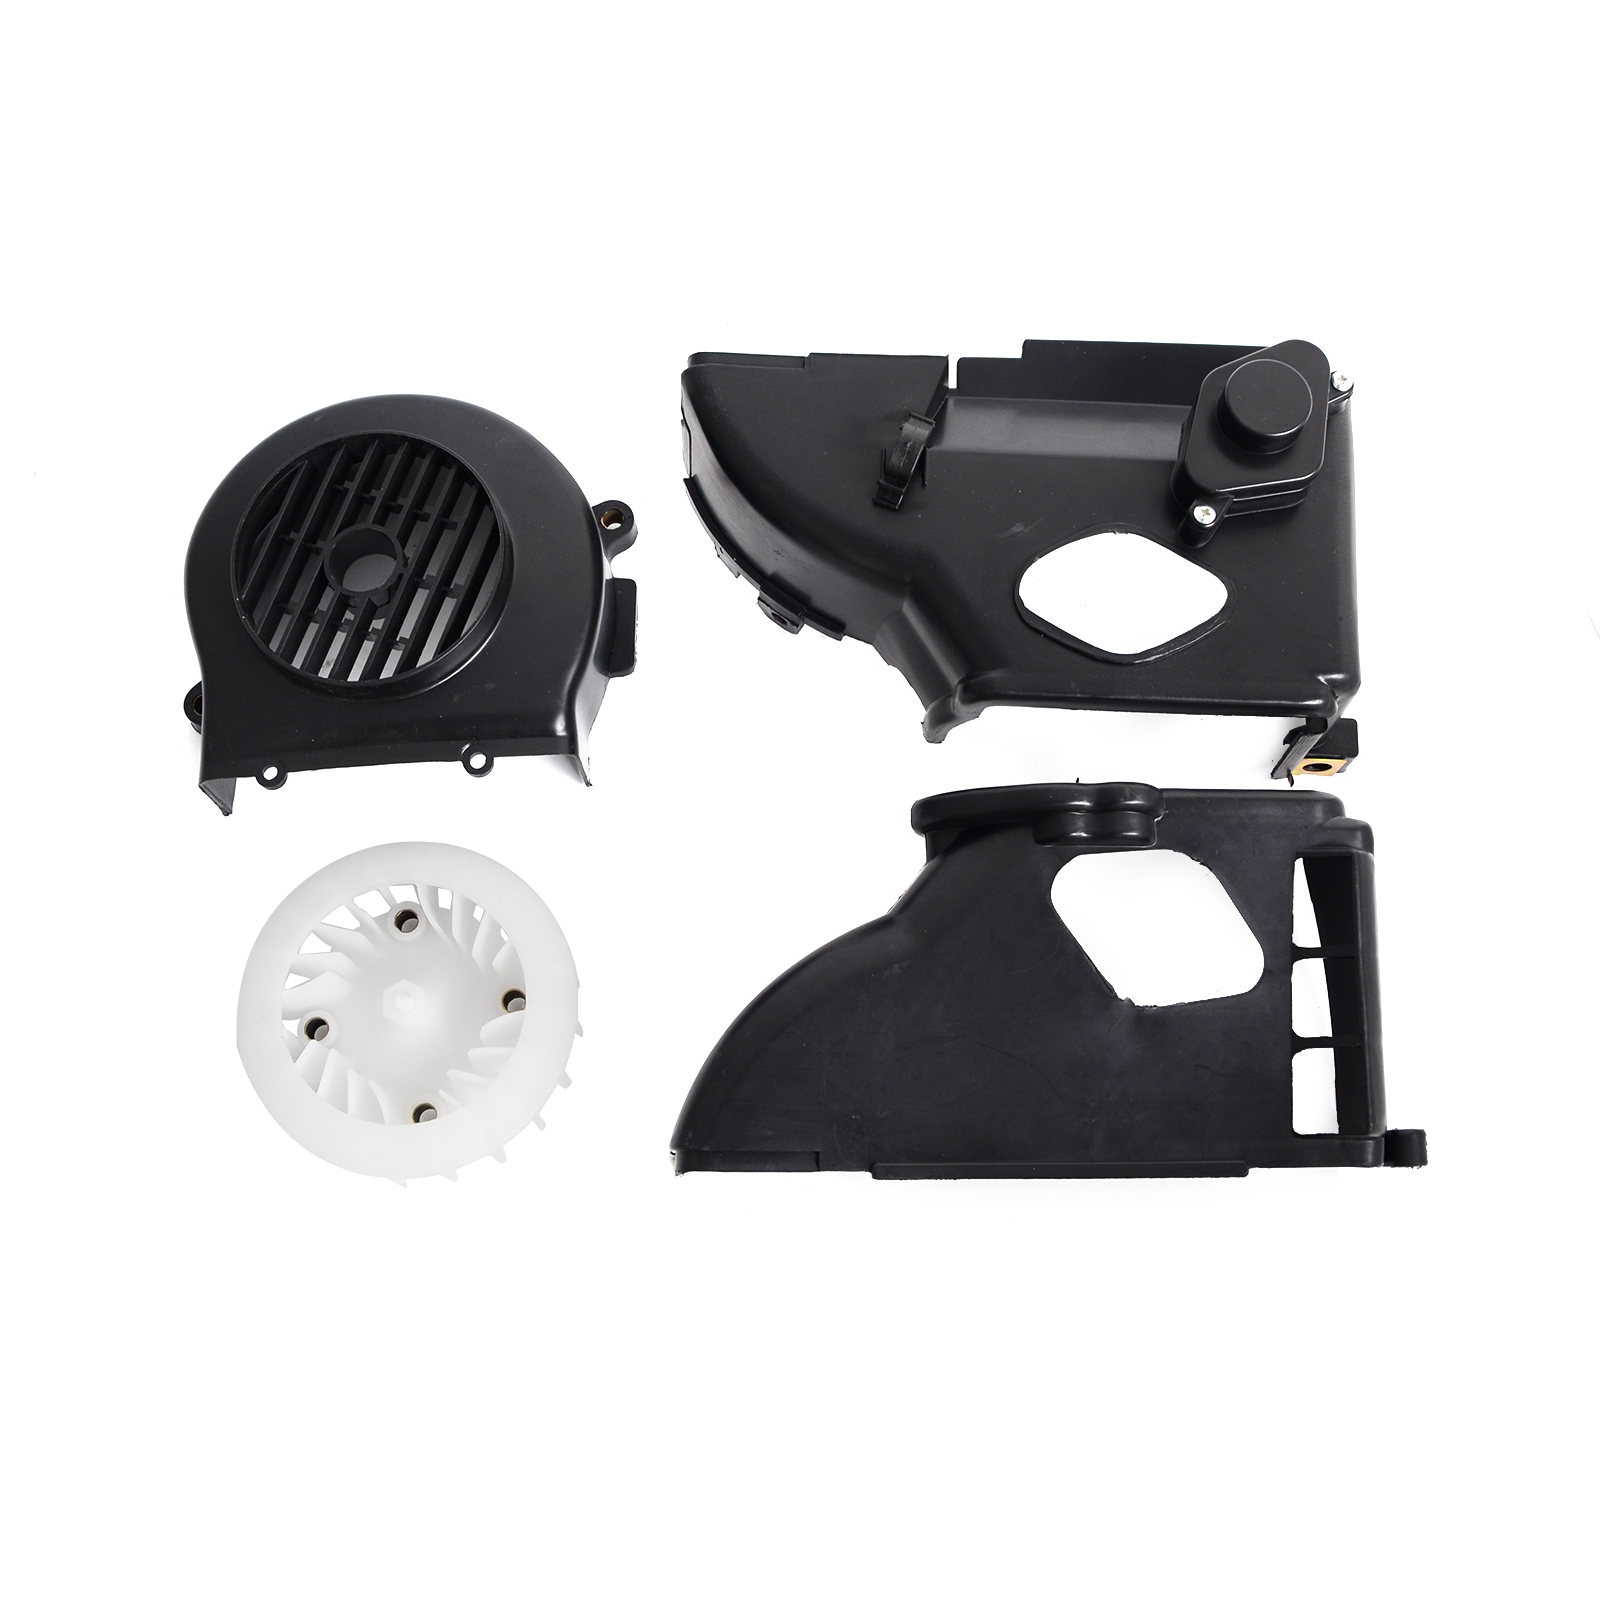 Cooling fan cover with upper and lower shroud for scooters with 50cc motors